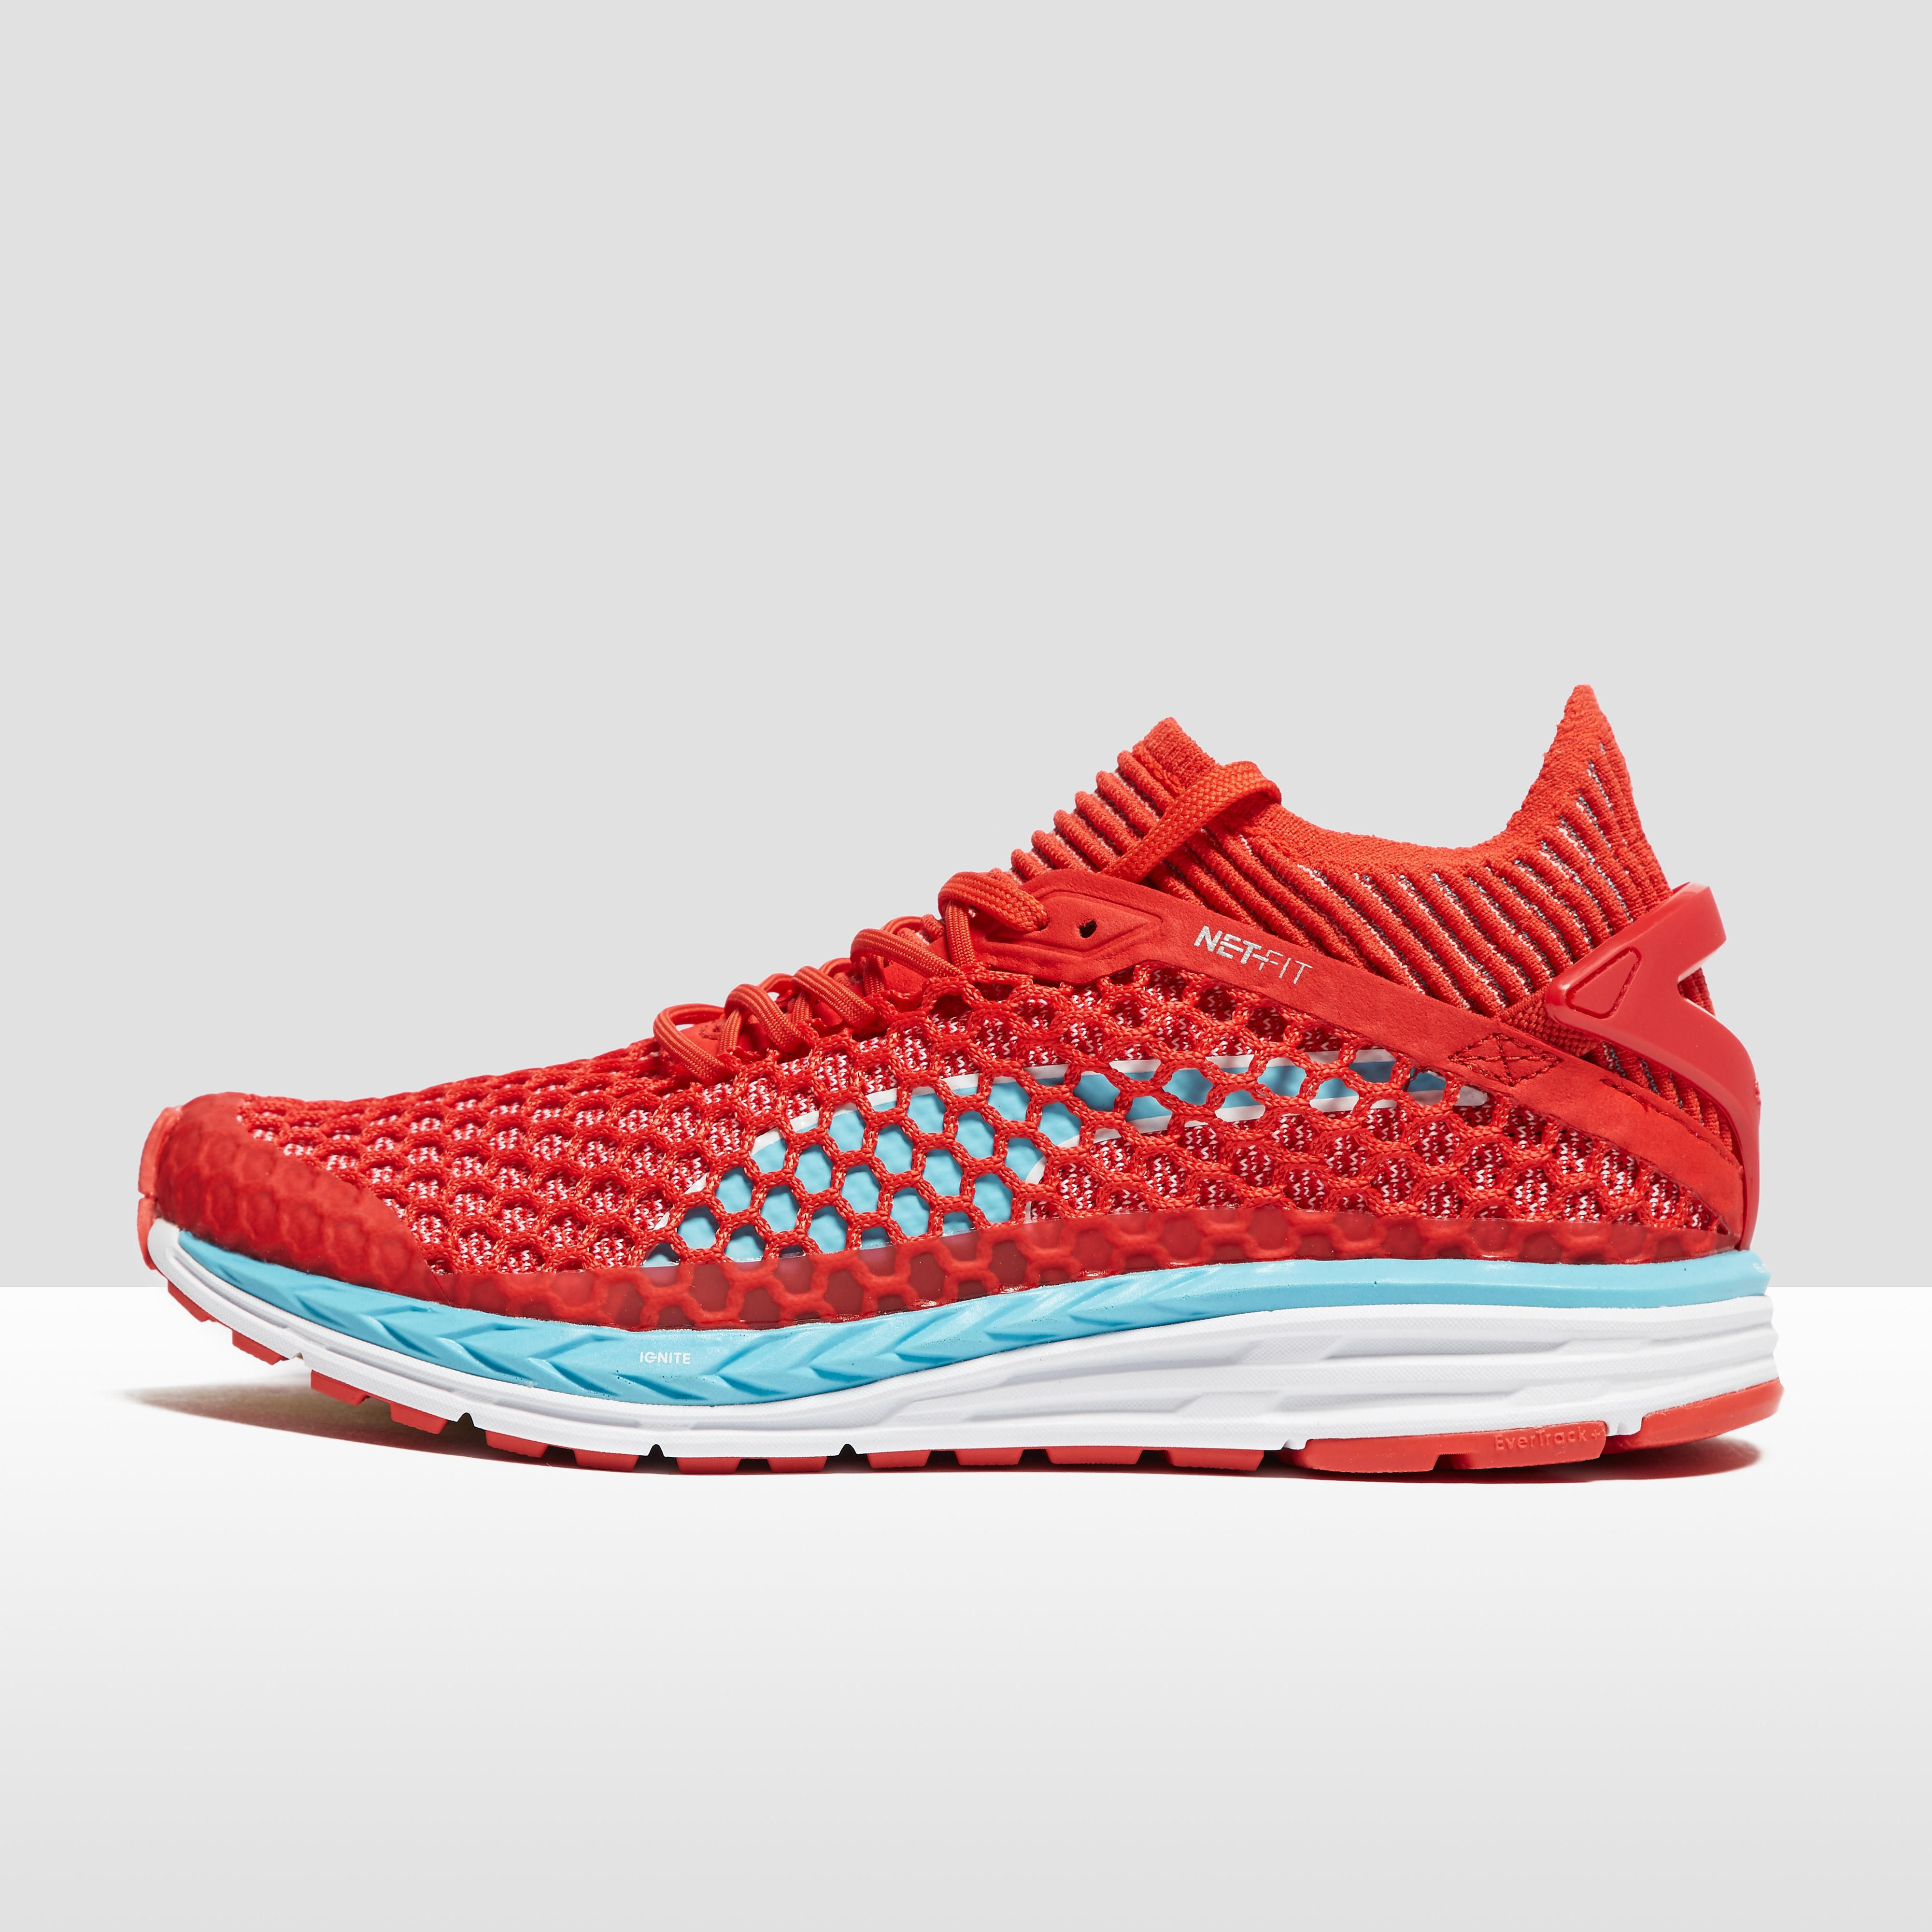 PUMA SPEED IGNITE NETFIT WOMEN'S RUNNING SHOES